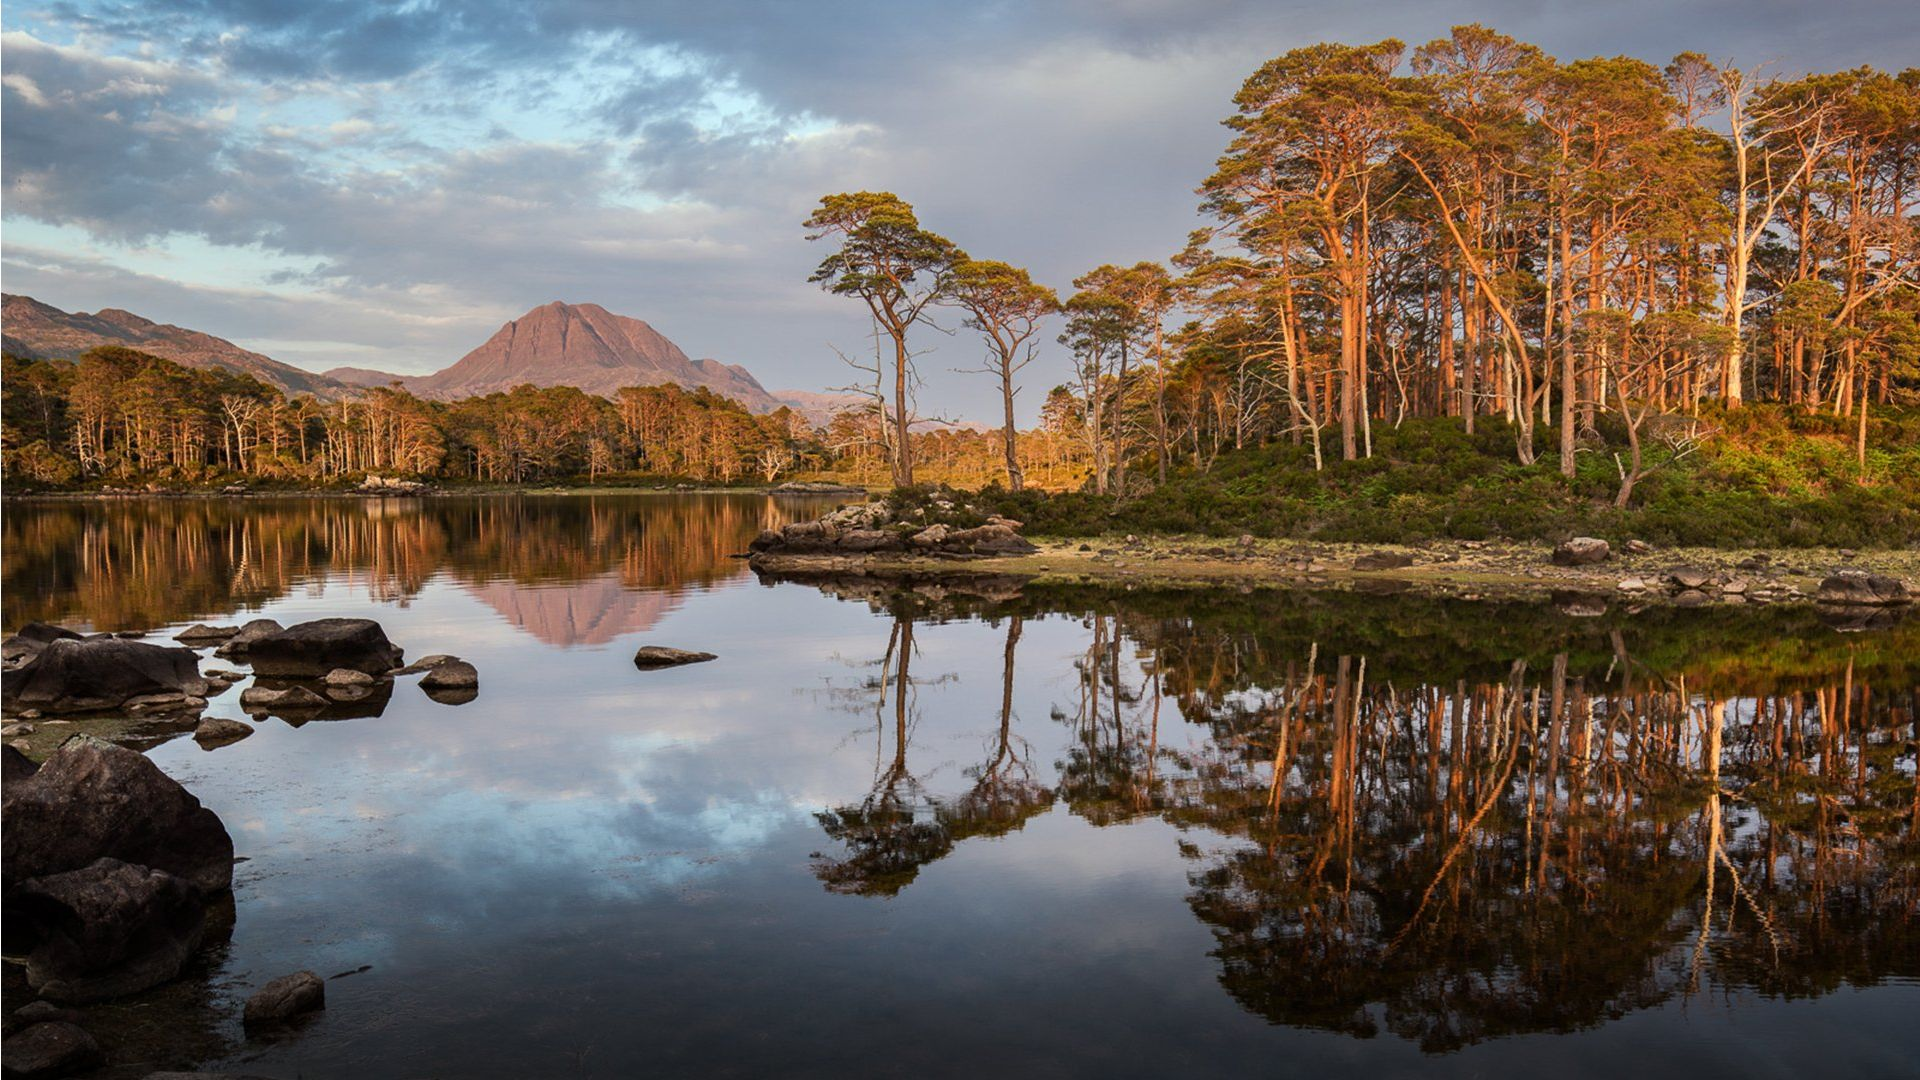 Trees reflect in a lake in Scotland with a mountain in the background